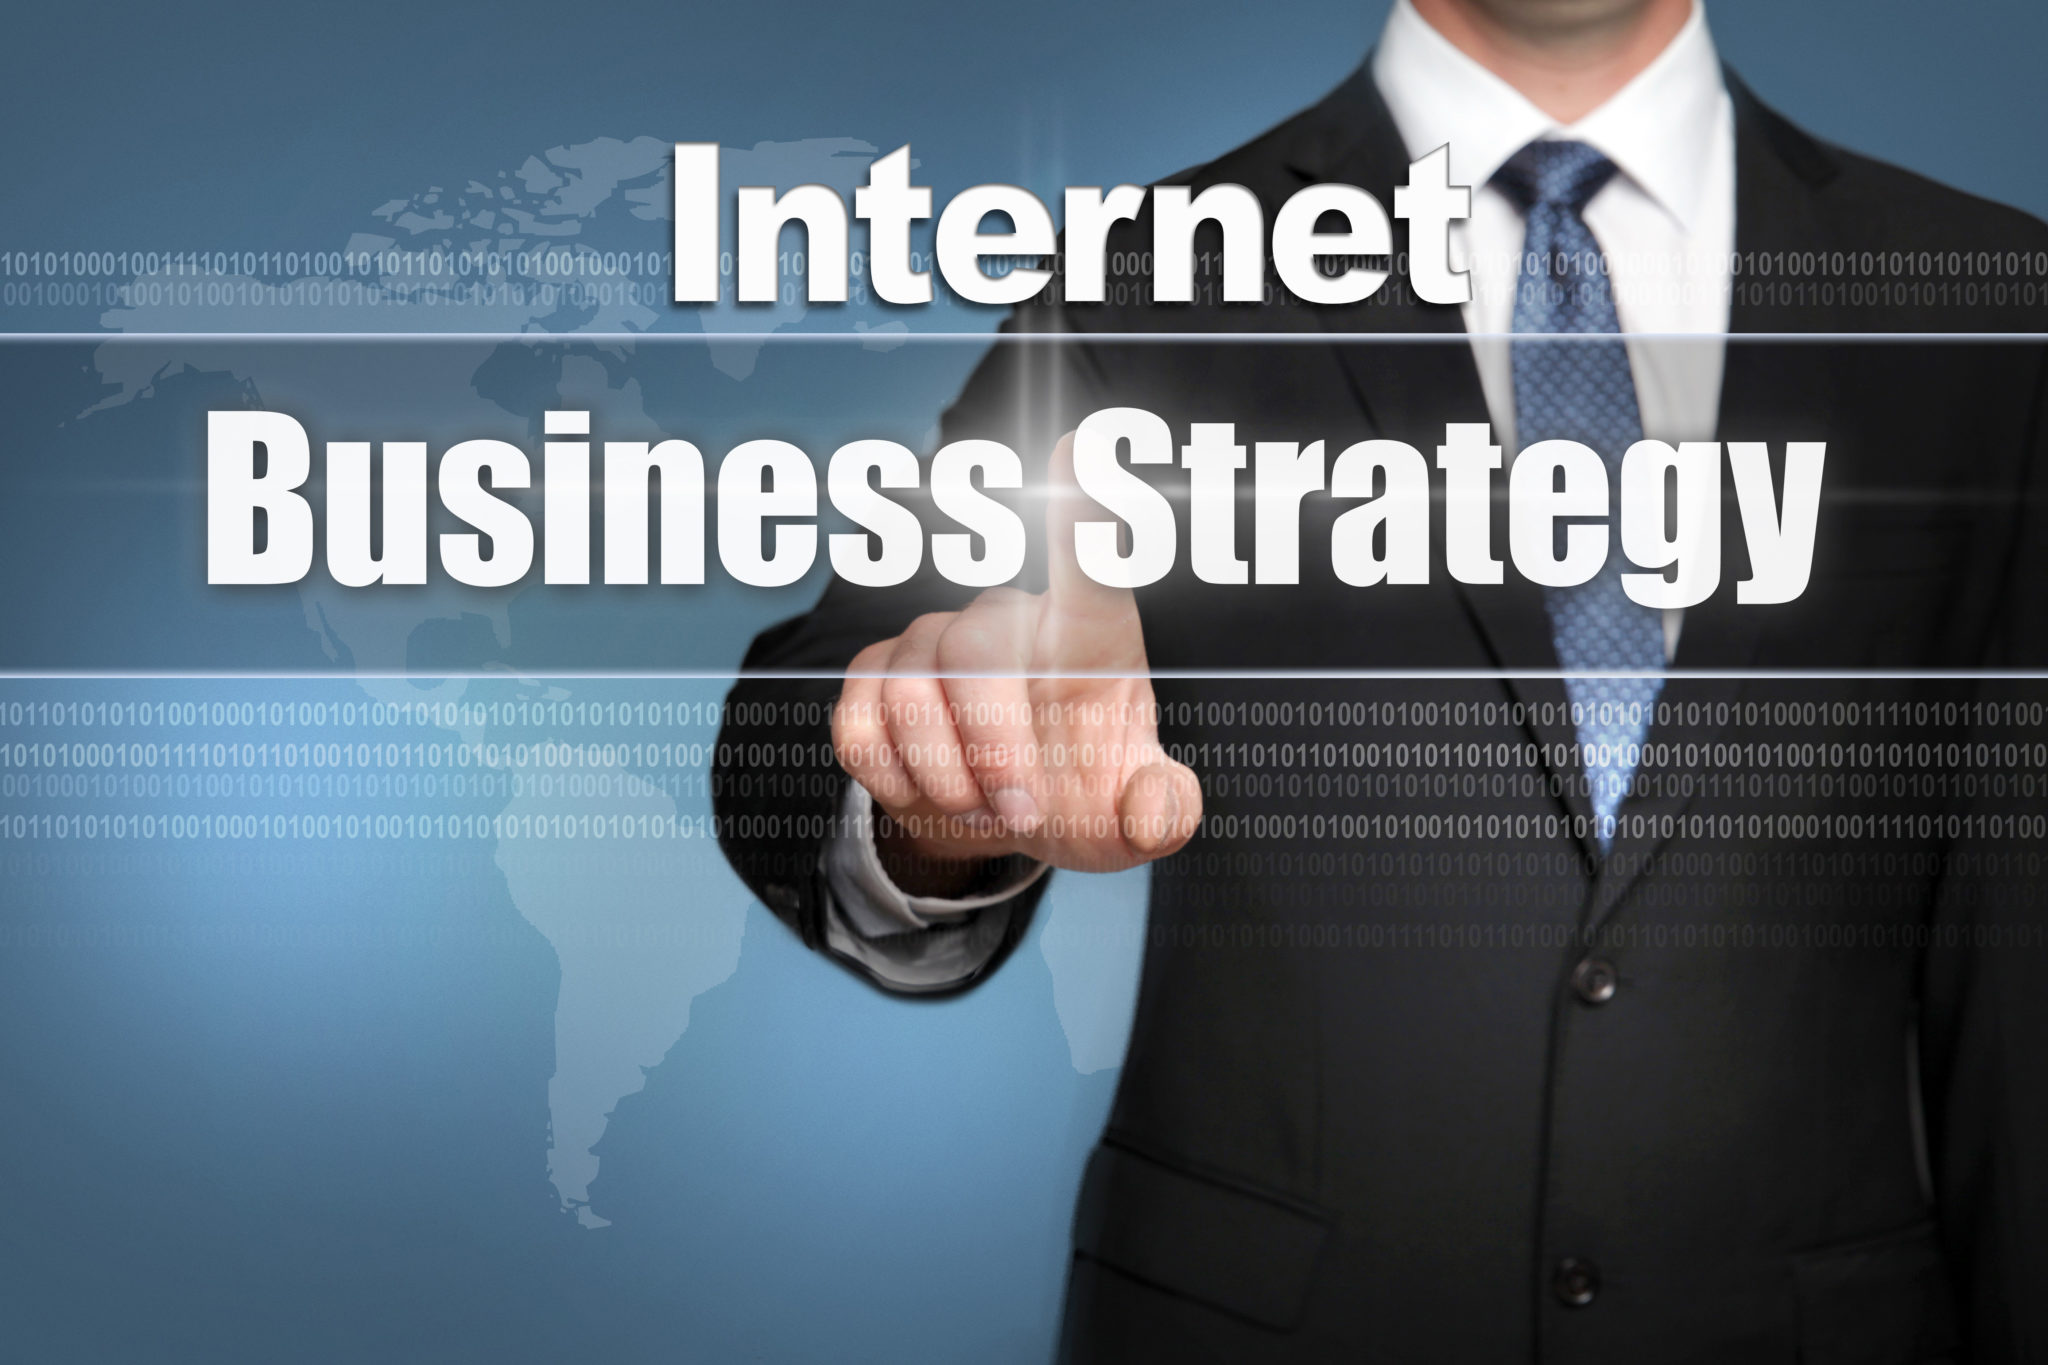 Internet Business Strategies